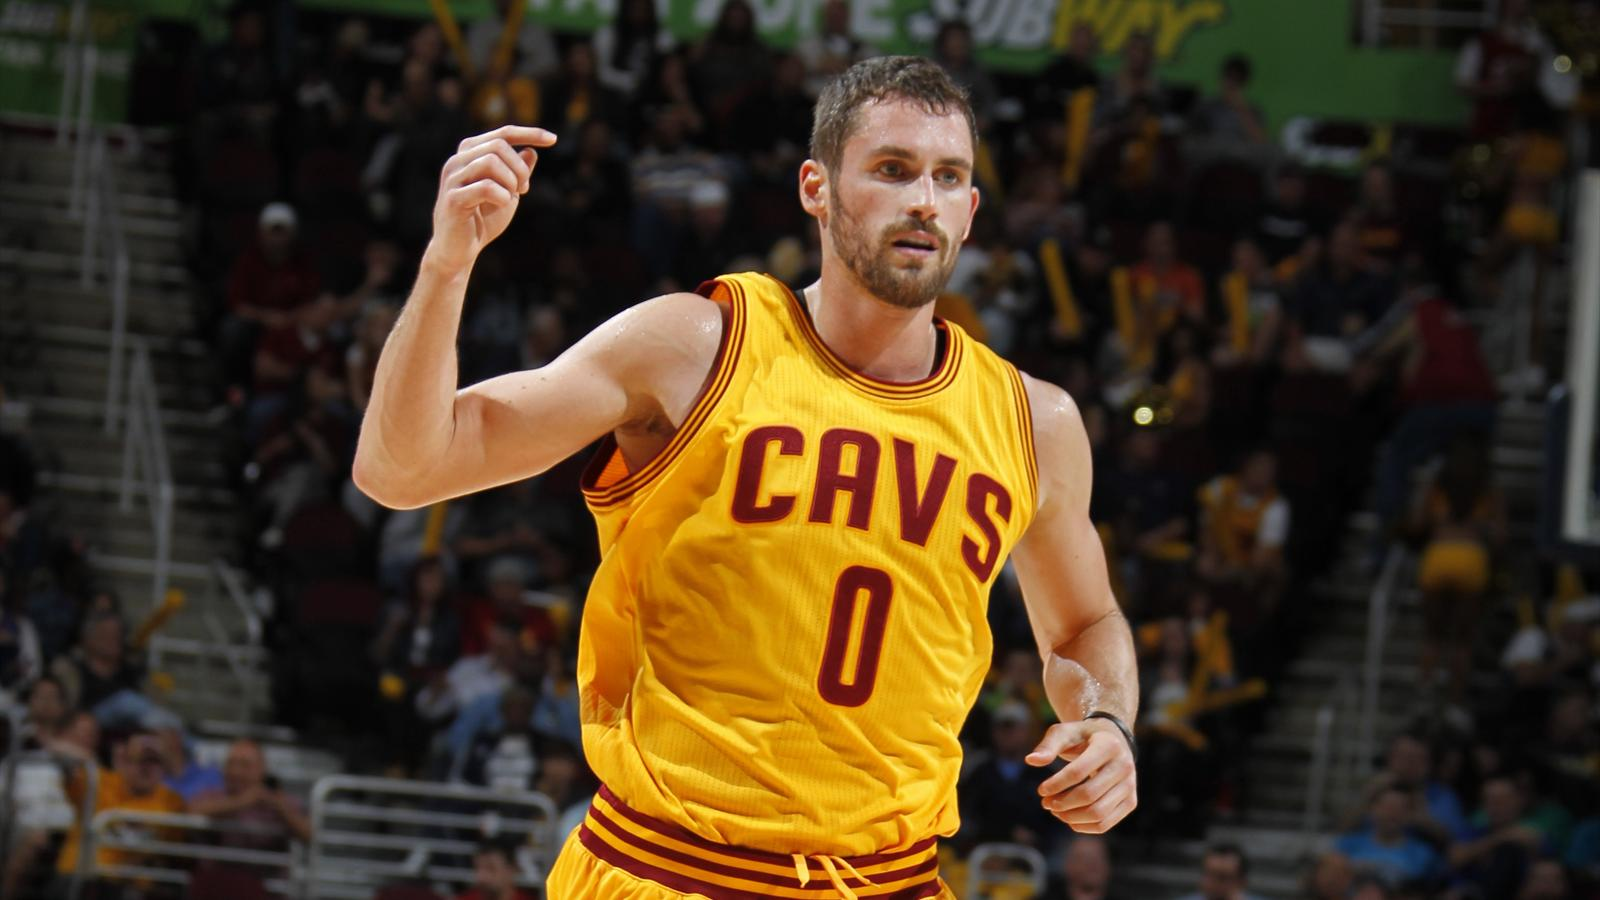 kevin love computer wallpaper 63708